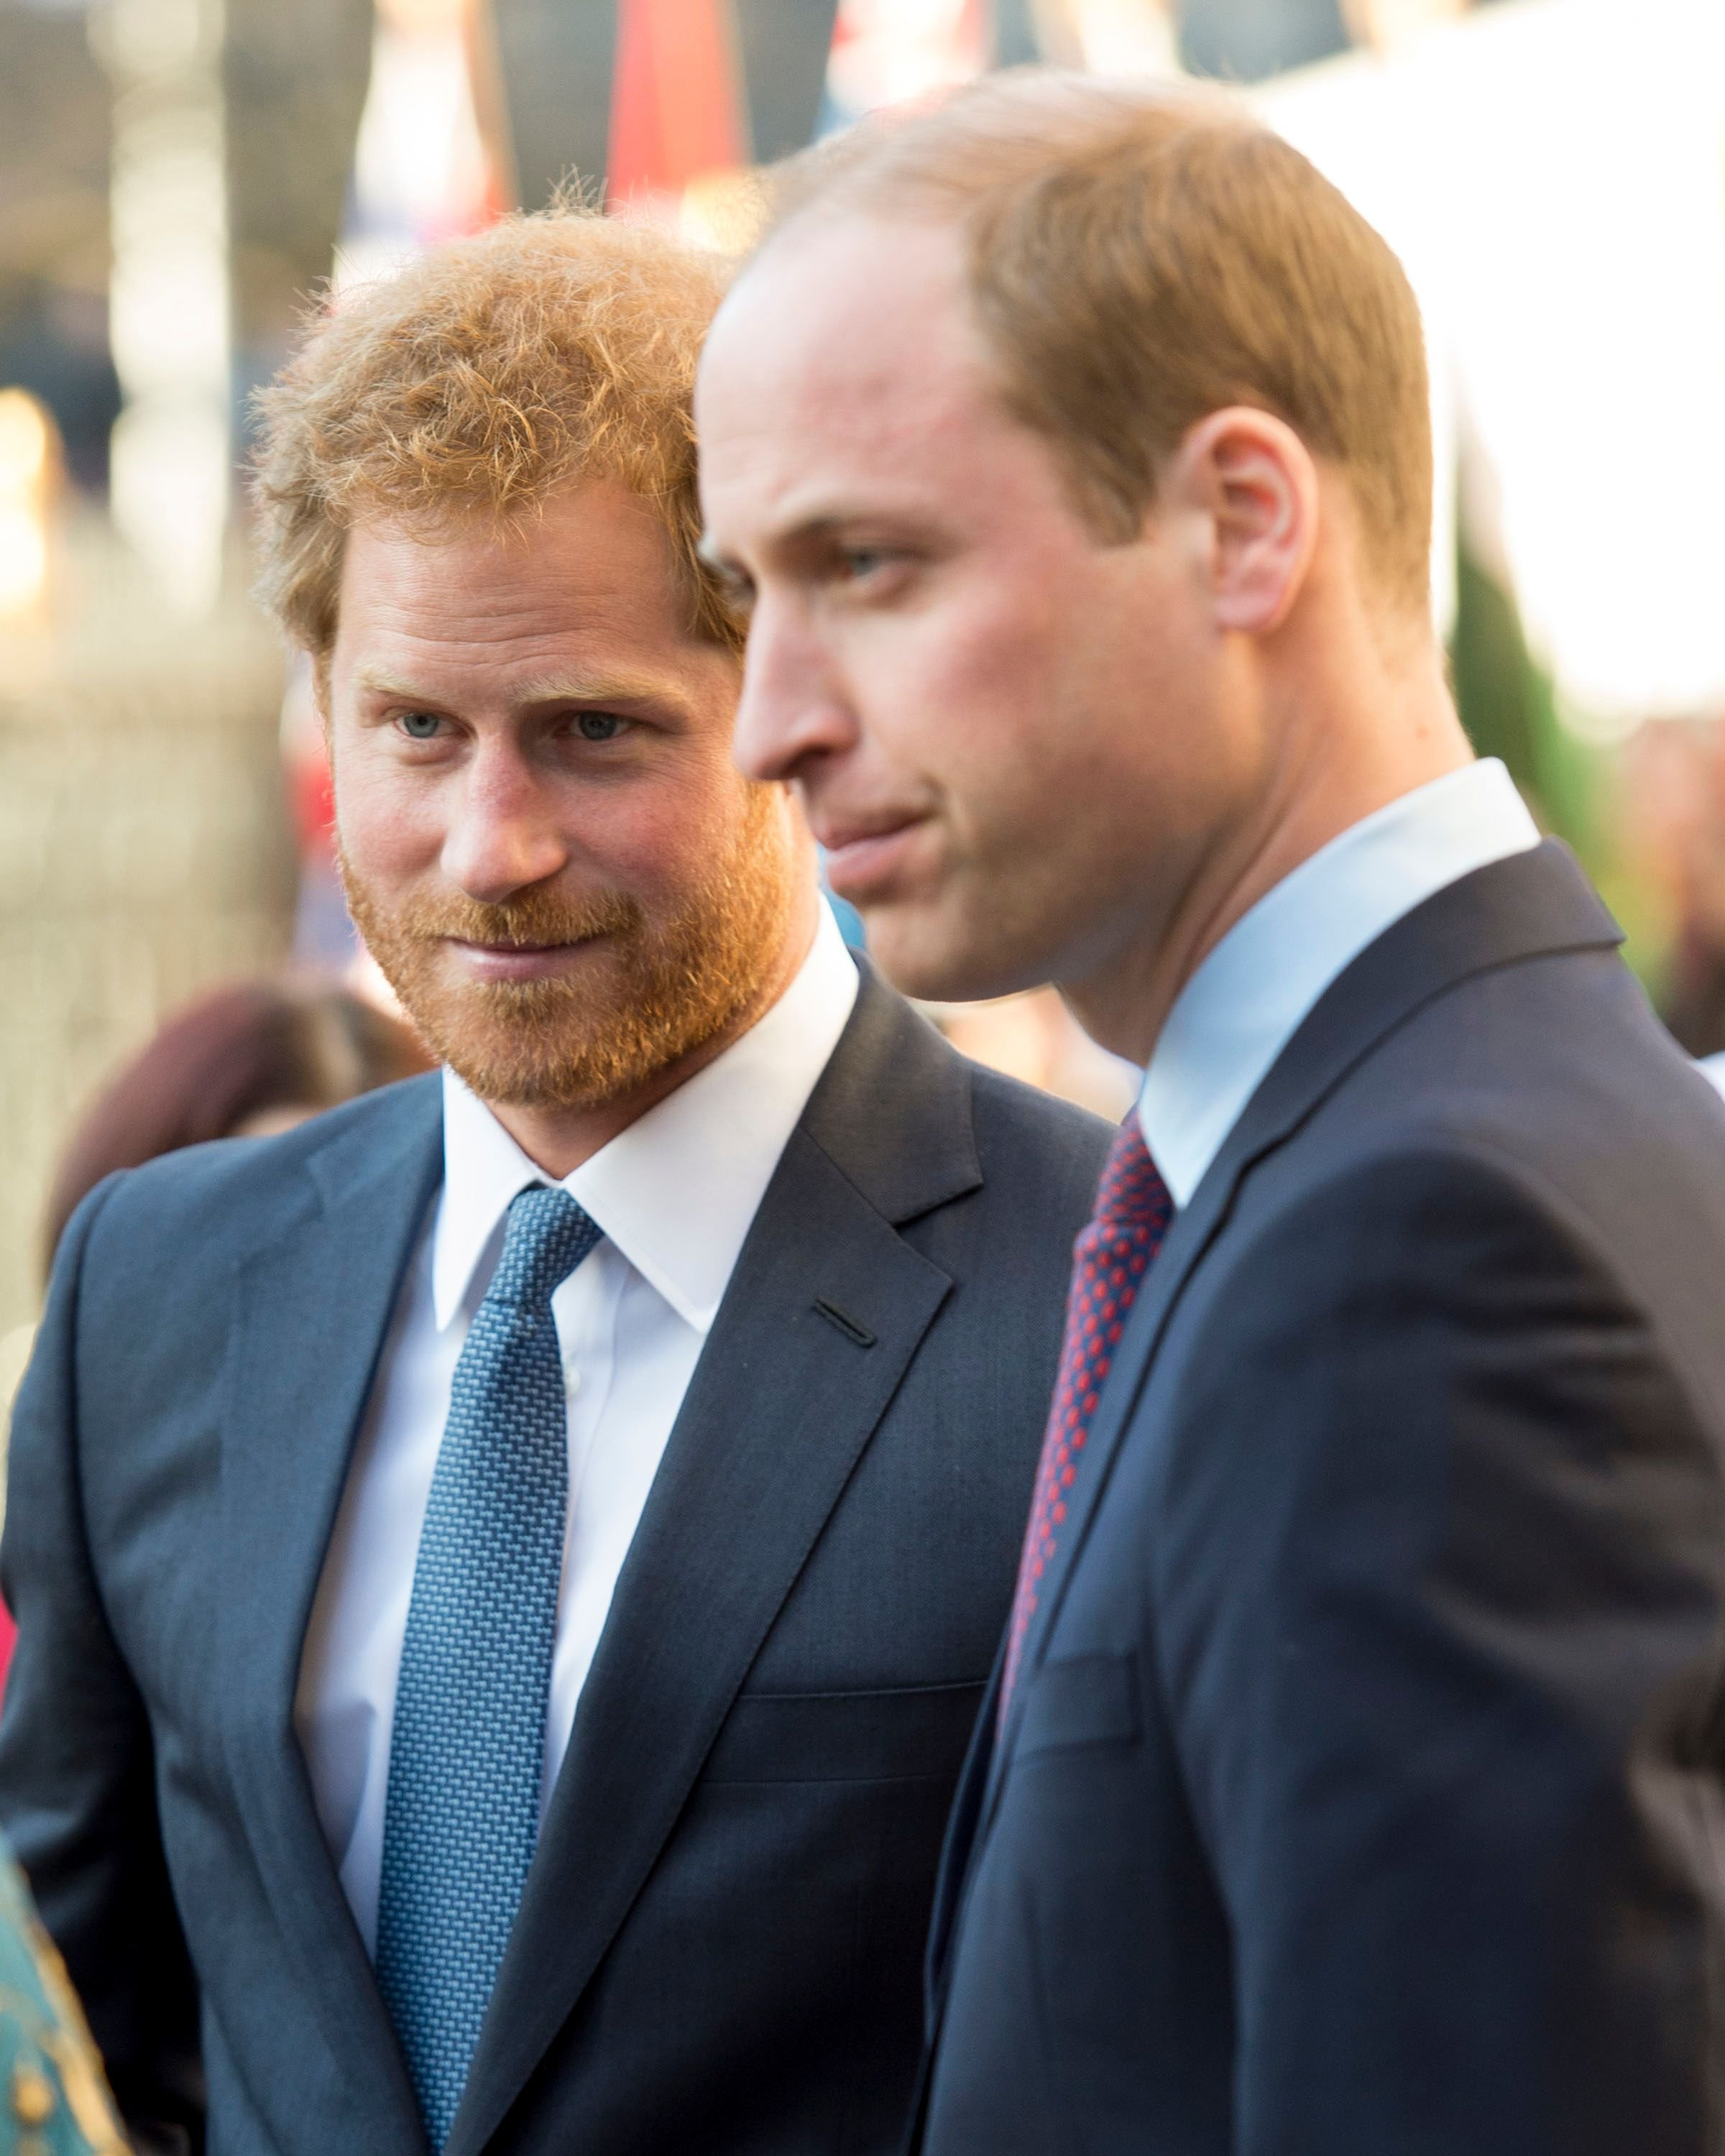 Prince Harry and Prince William atthe Commonwealth Observance Day Service on March 14, 2016, in London, United Kingdom | Photo: Mark Cuthbert/UK Press/Getty Images